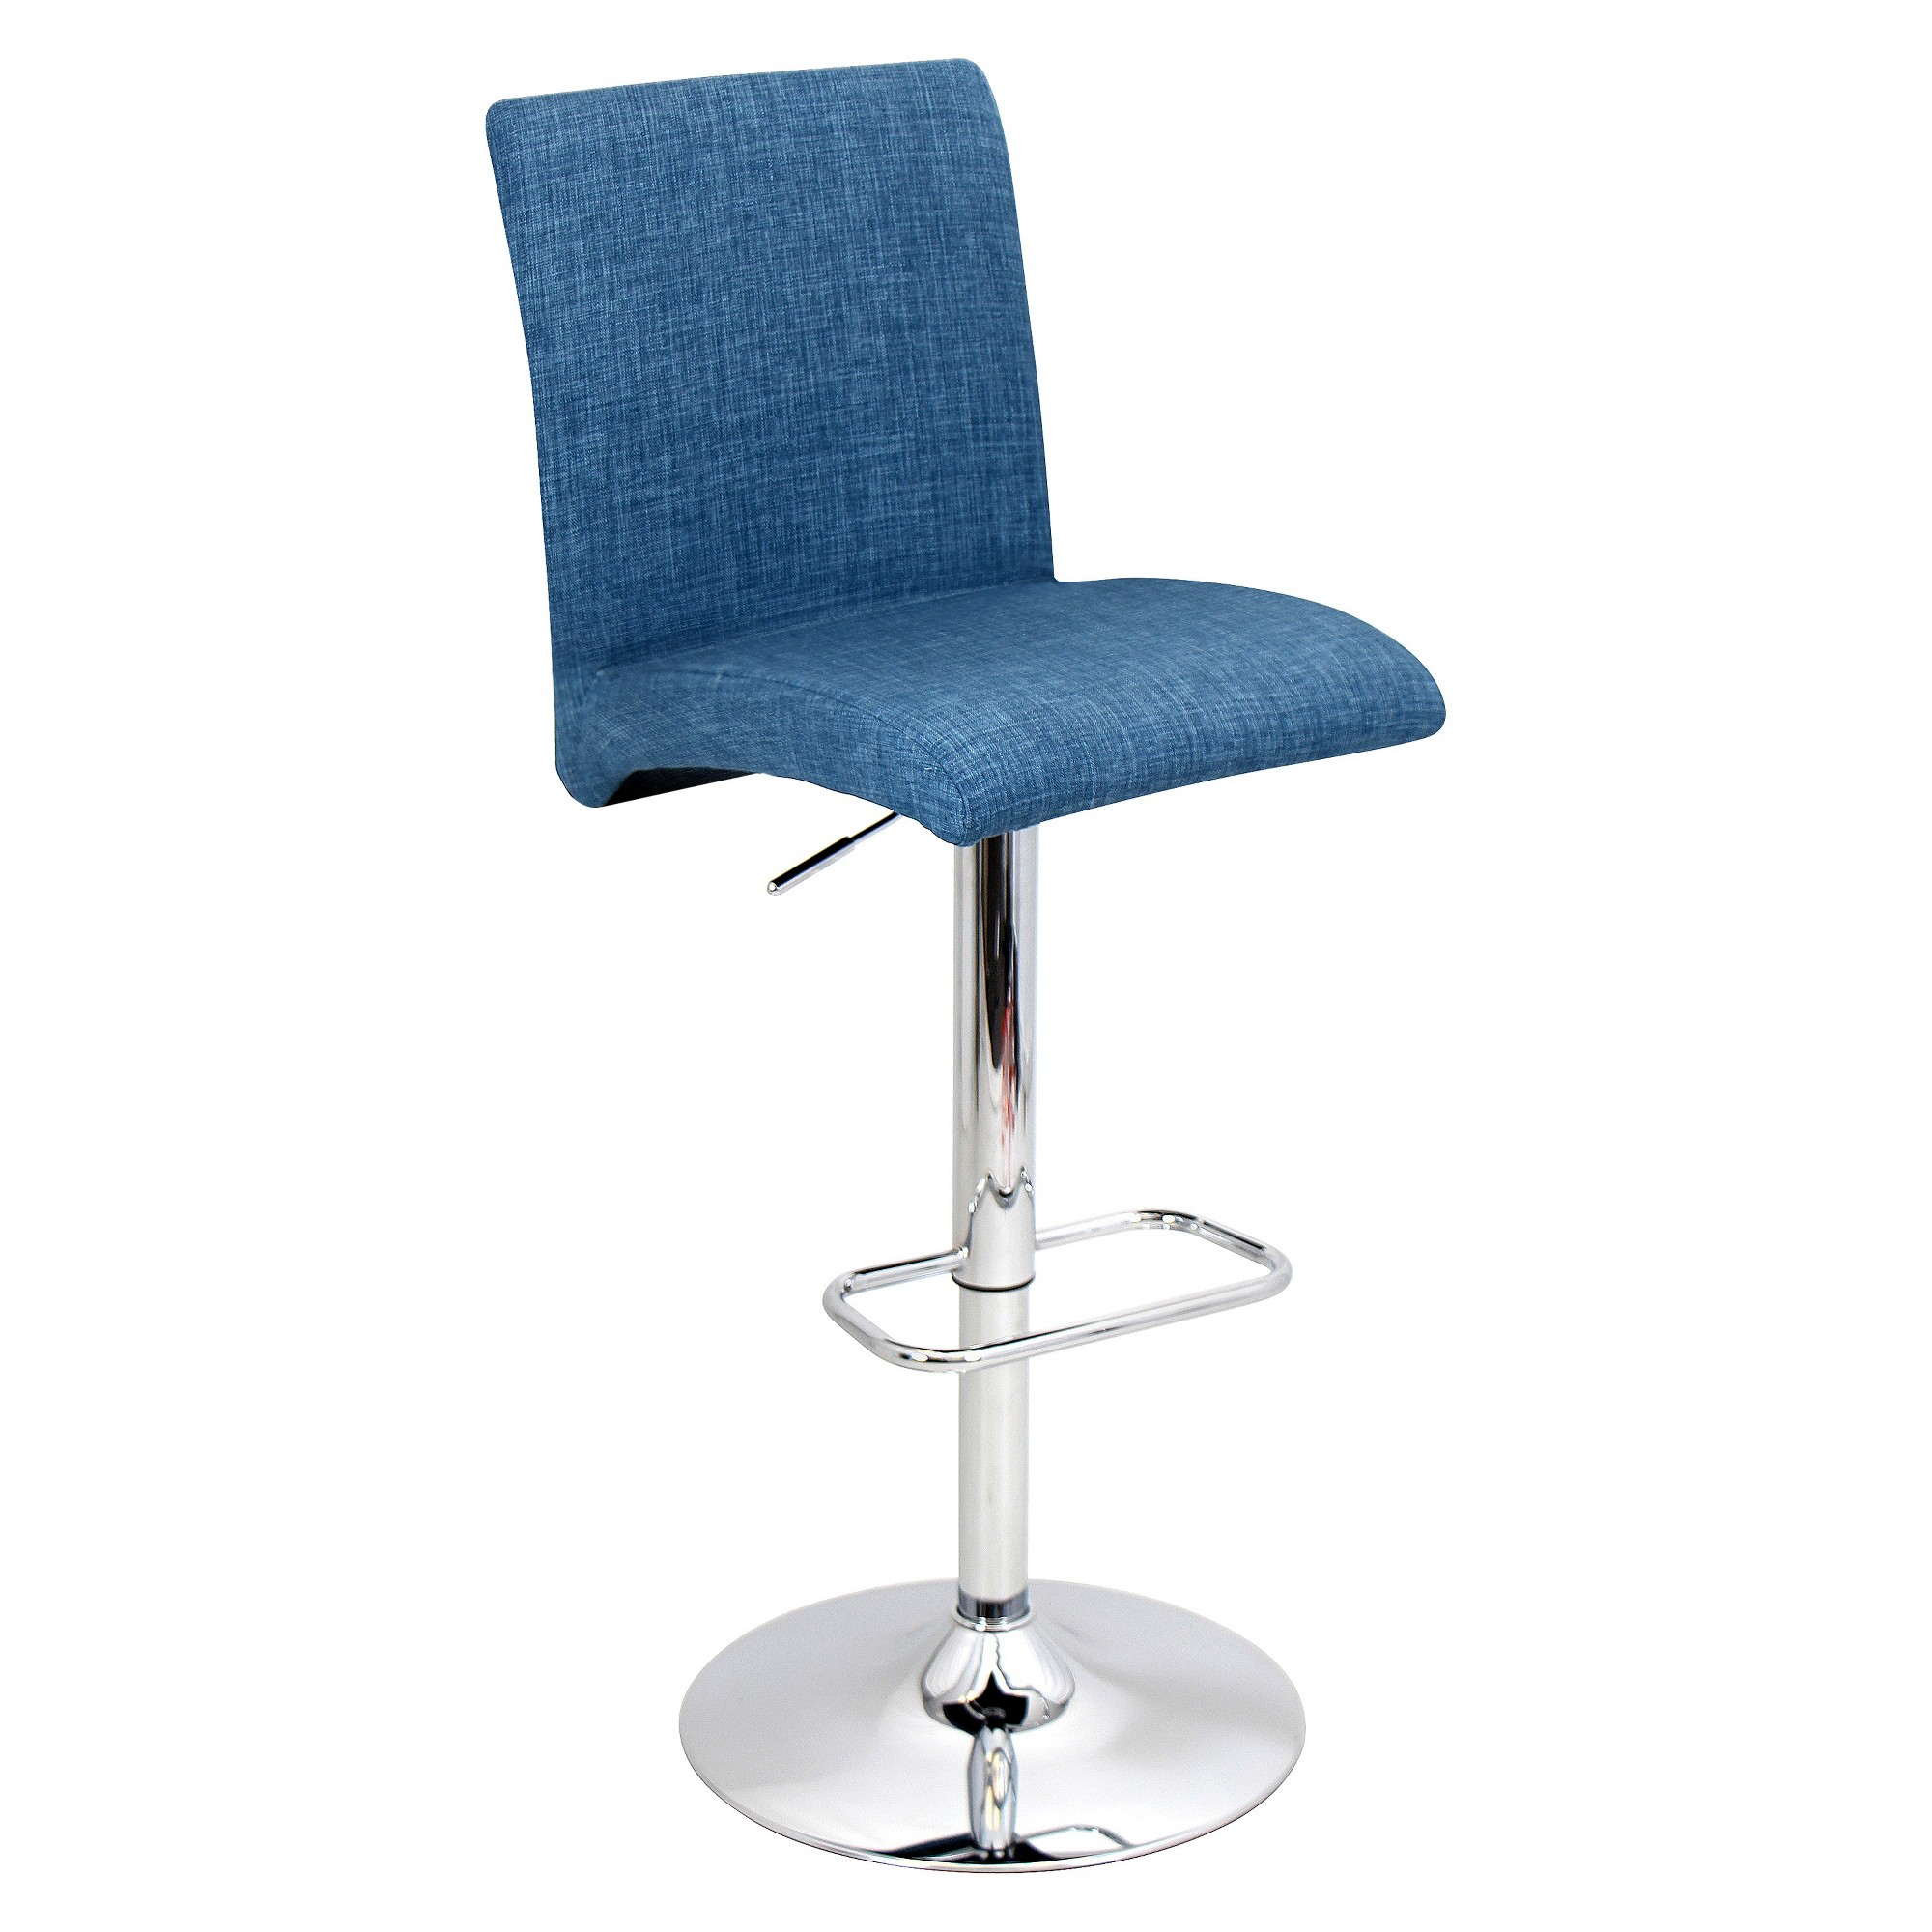 en product b architonic stool stools blue basic by les from bar volar